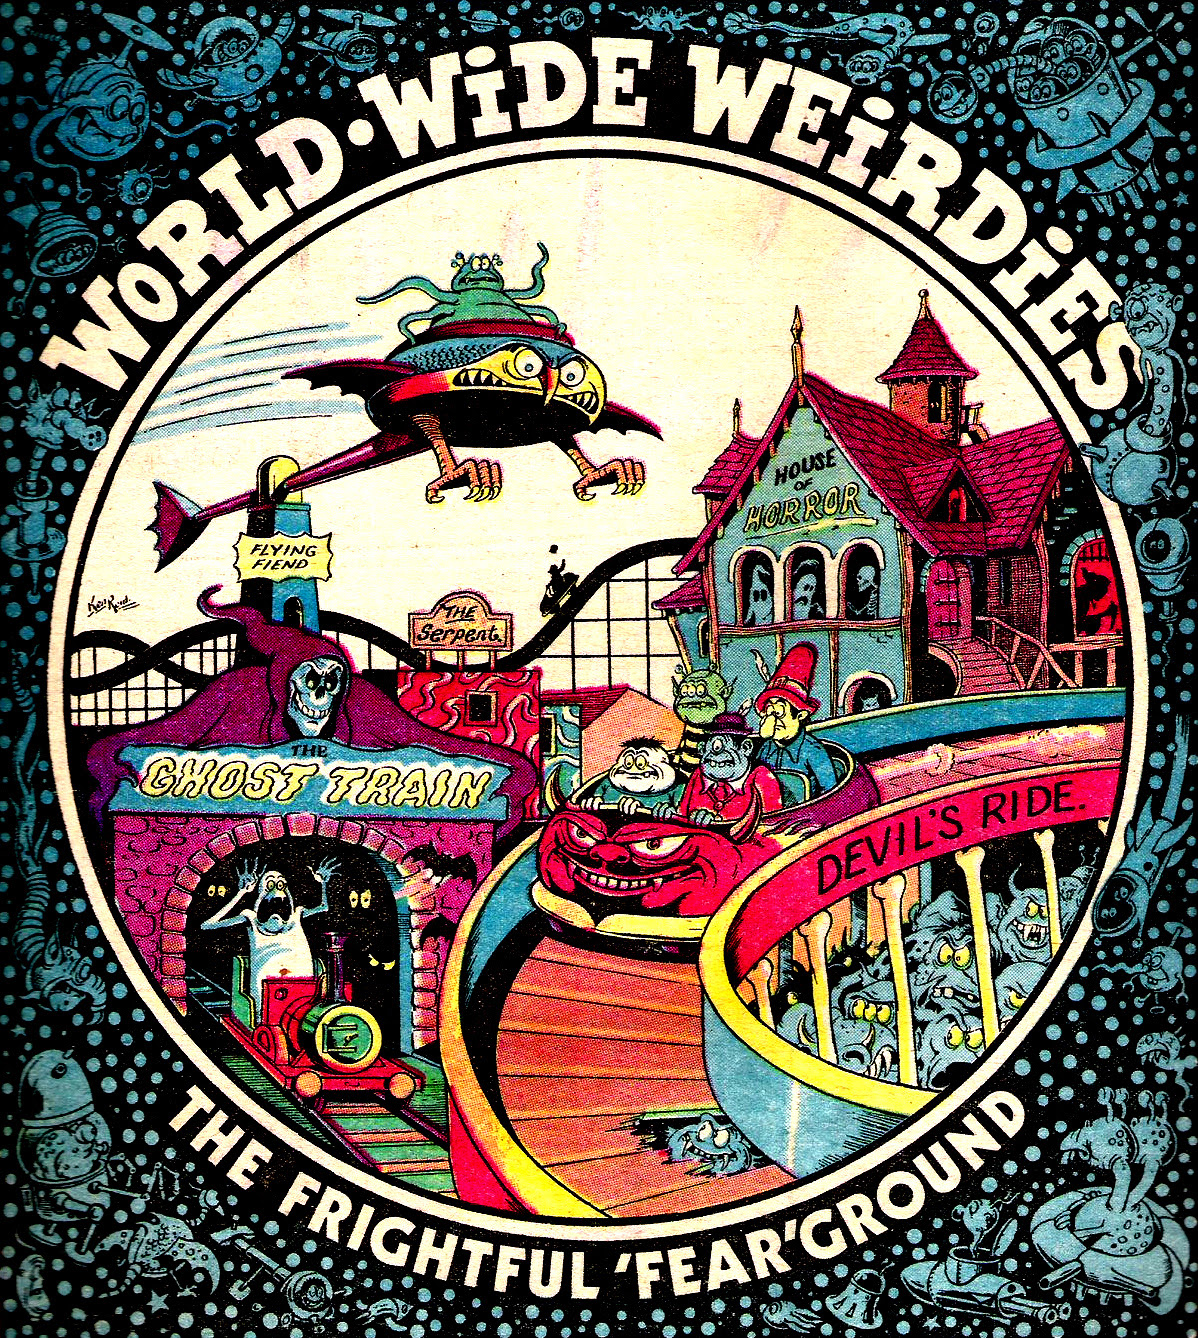 Ken Reid - World Wide Weirdies 46